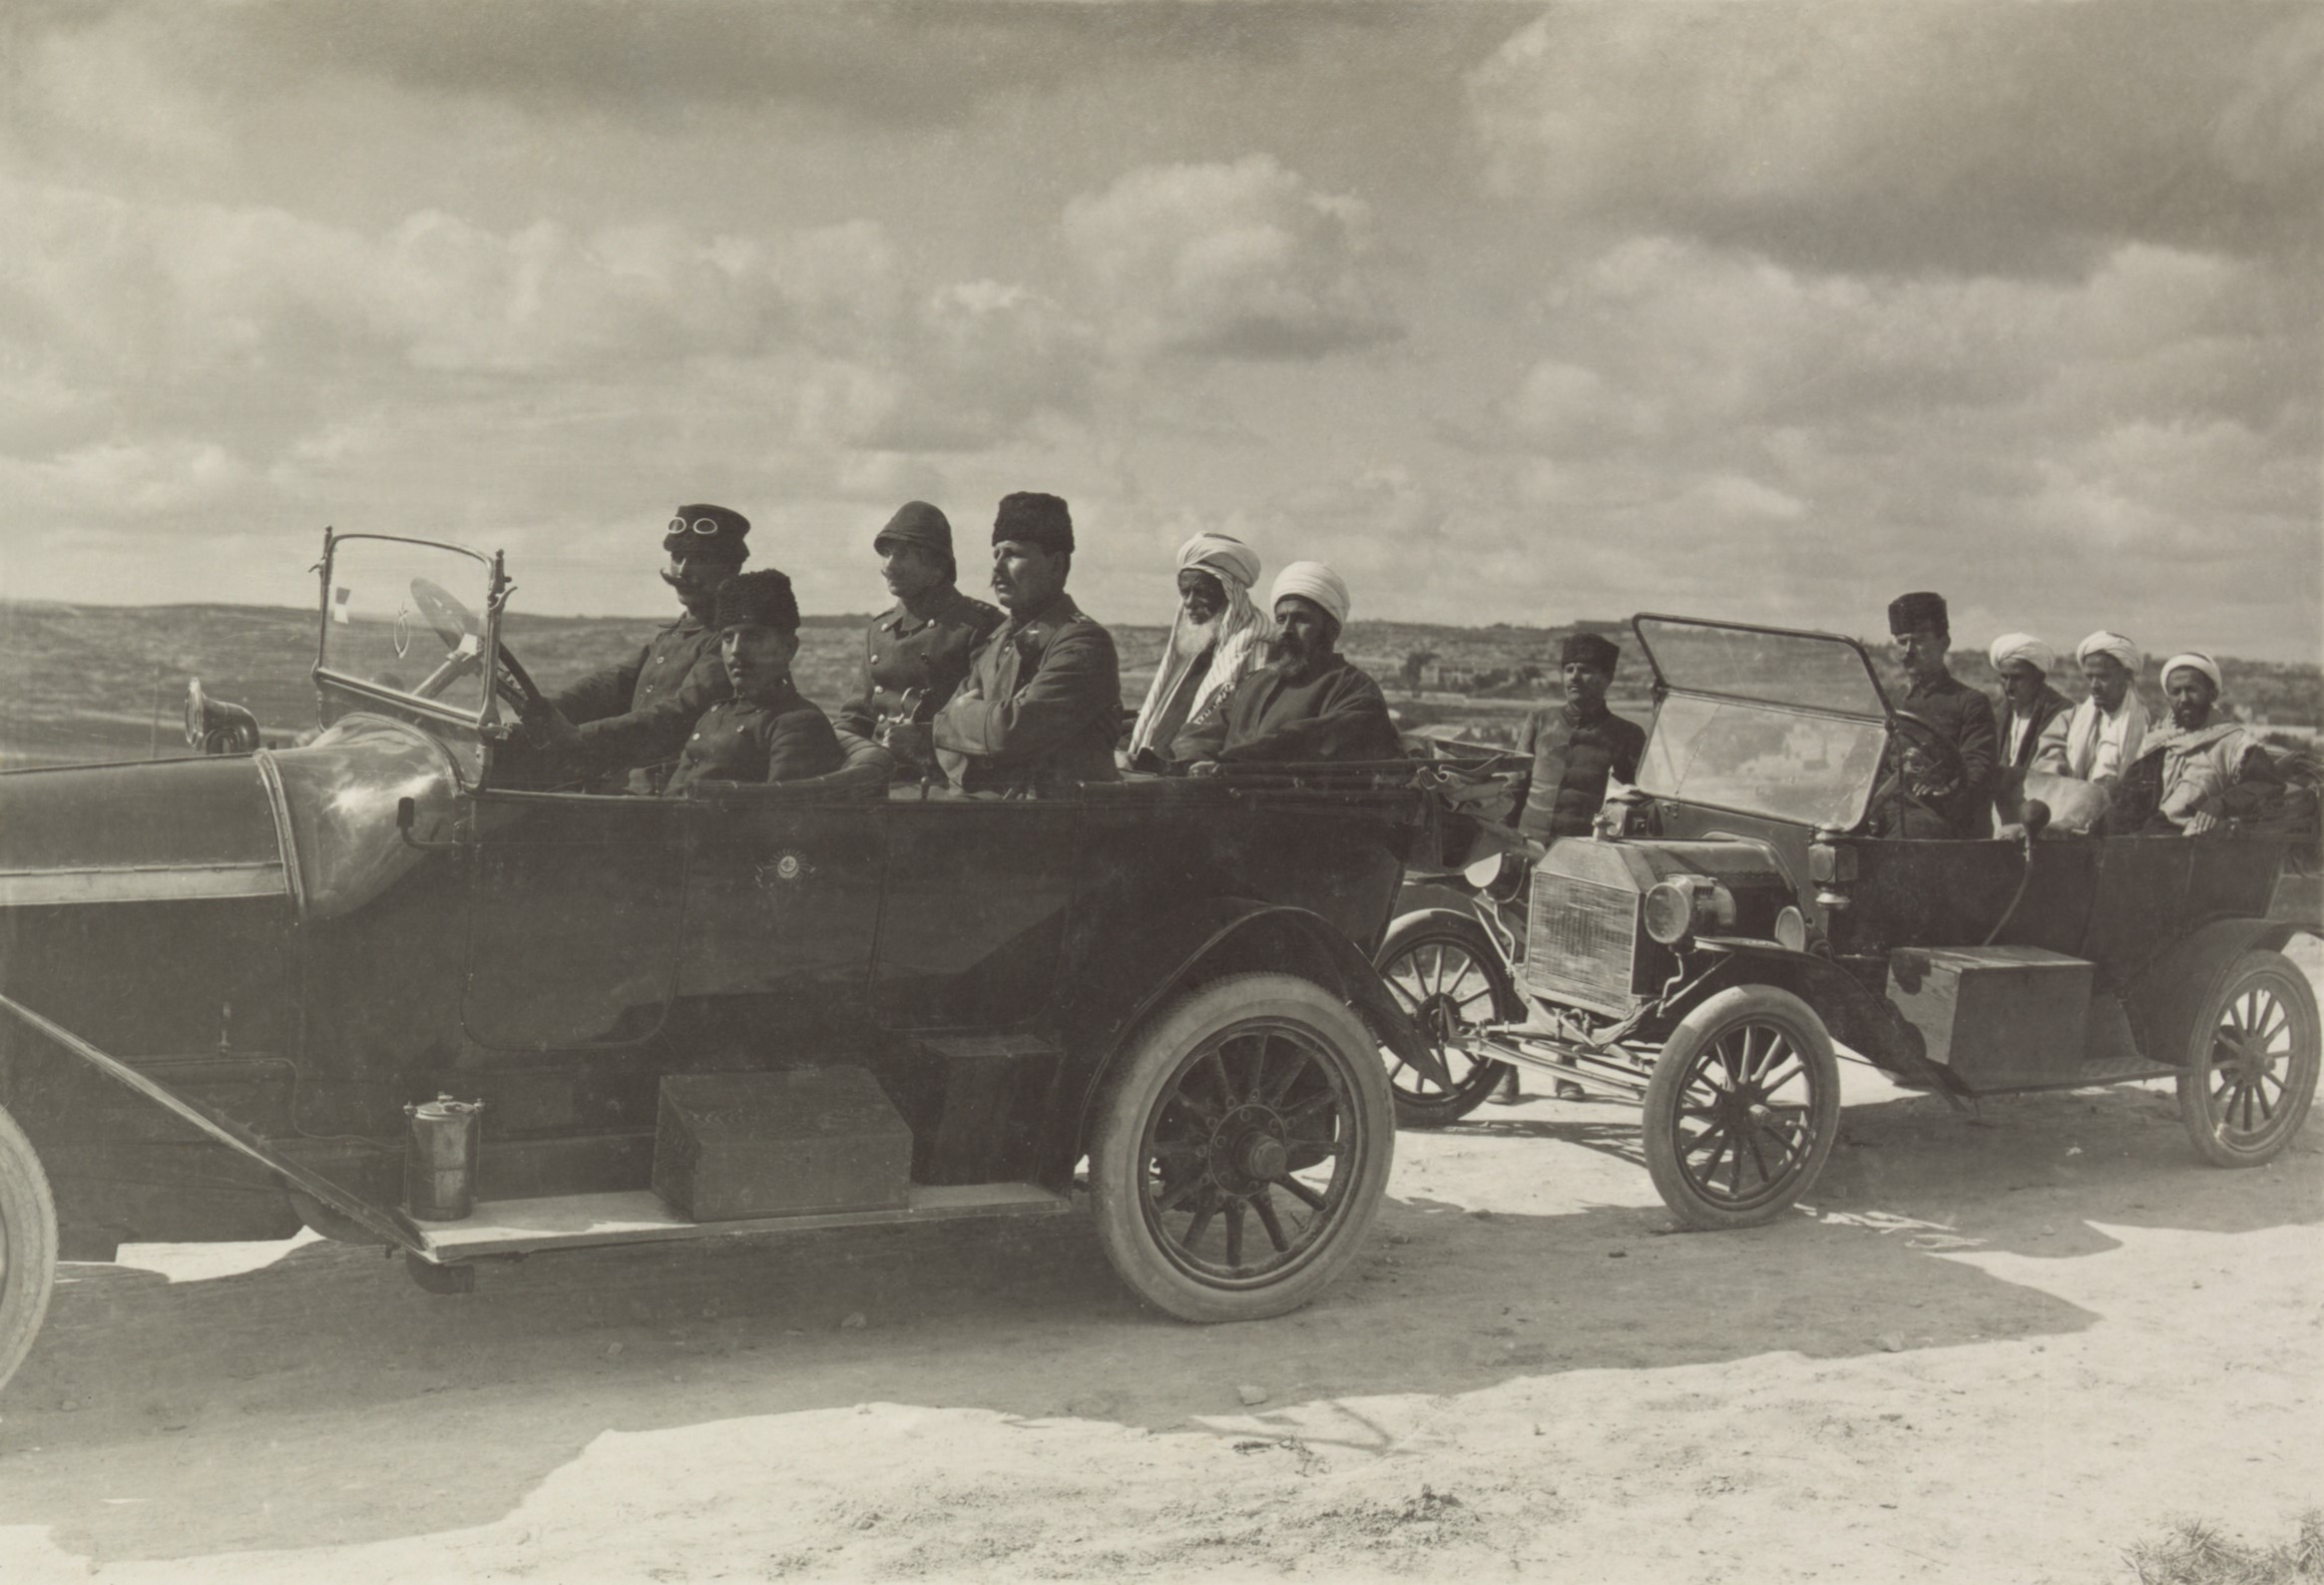 Yemeni Sheikhs visit the front as guests of Cemal Pasha.